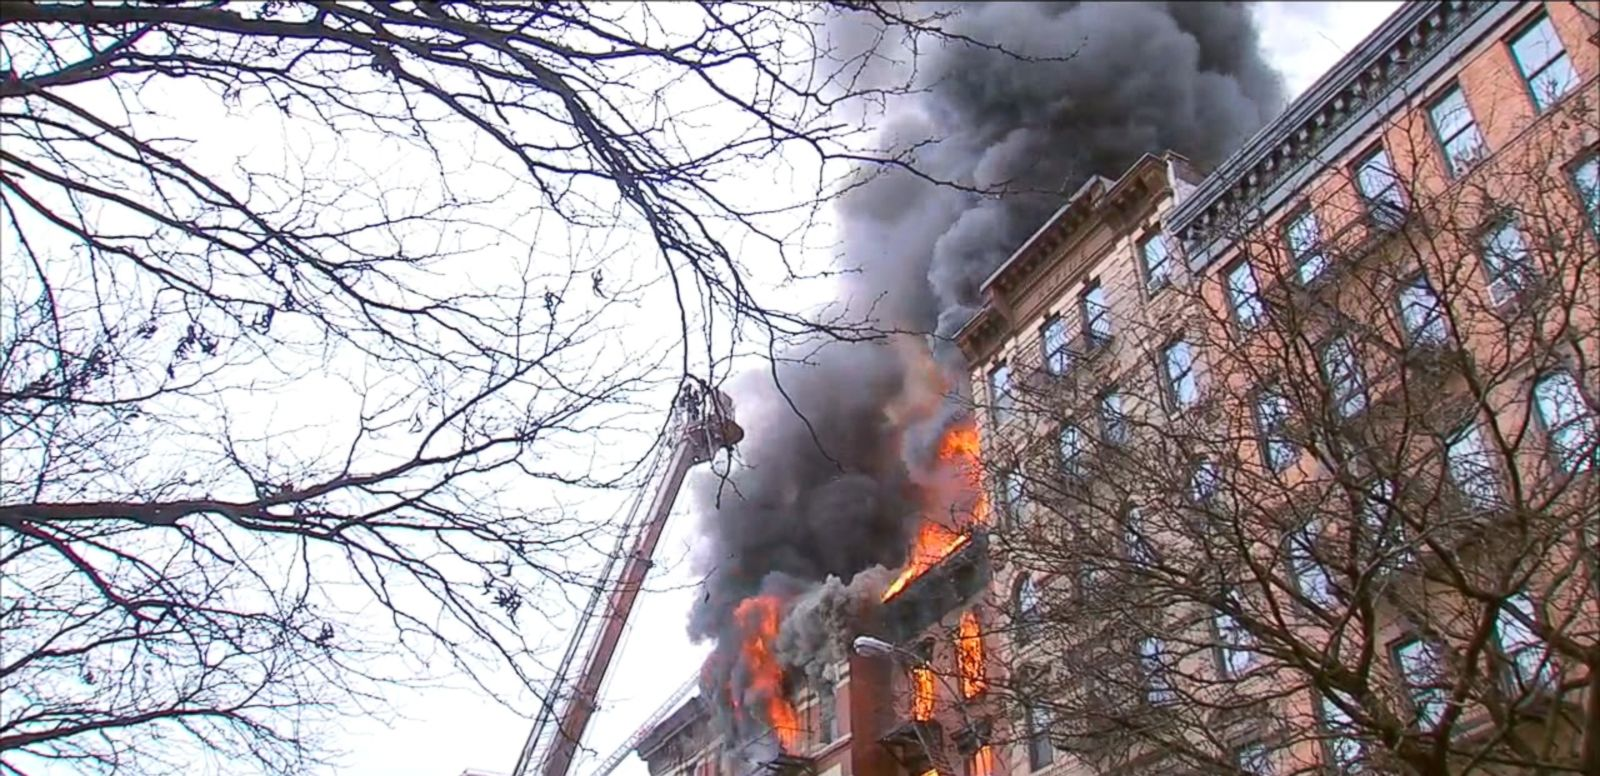 VIDEO: An apartment building in Manhattan's East Village has partially collapsed